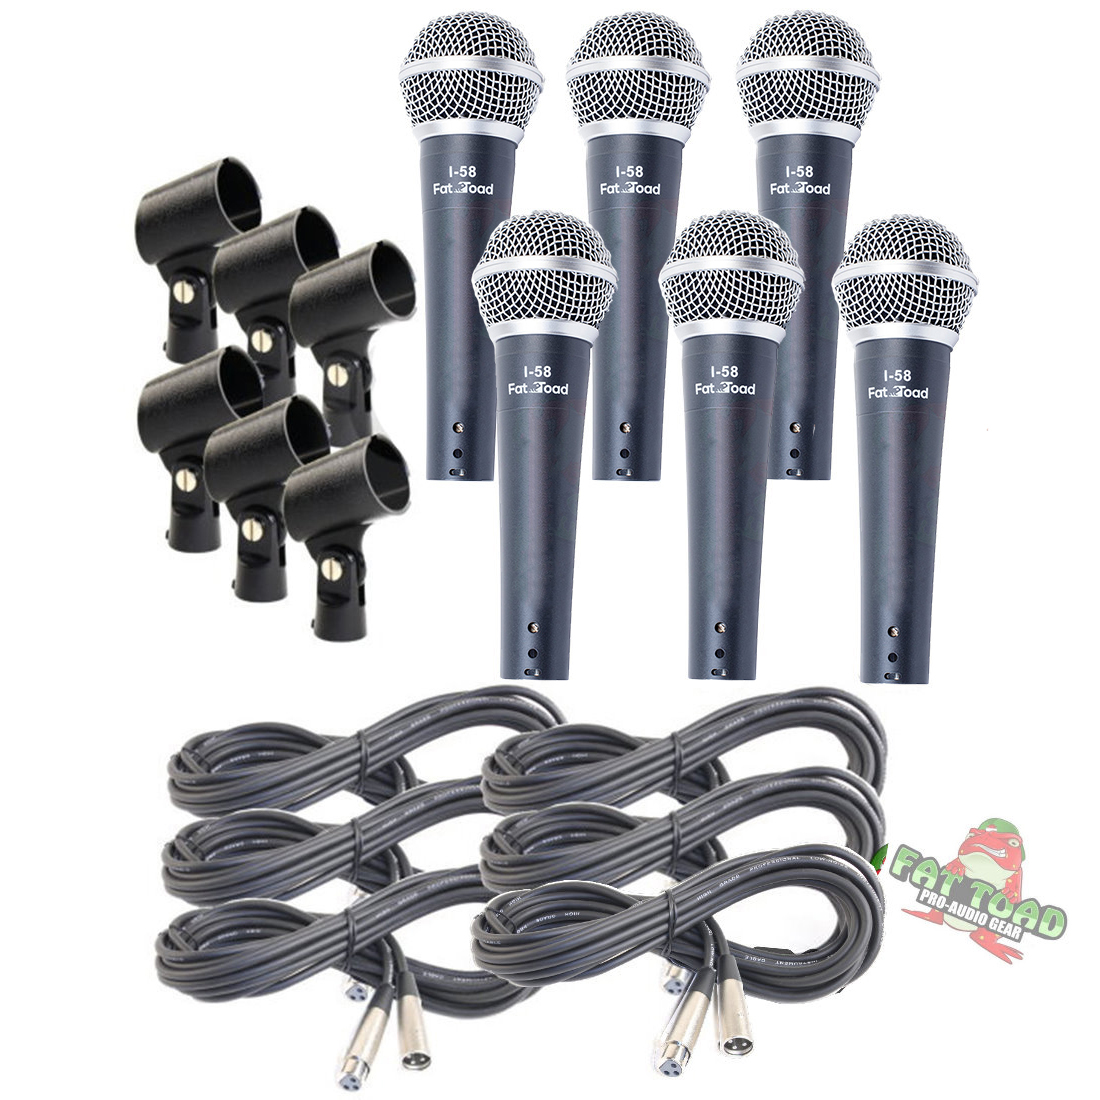 Hand-Held Dynamic Microphone Package with XLR Mic Cables 6 PACK by Griffin